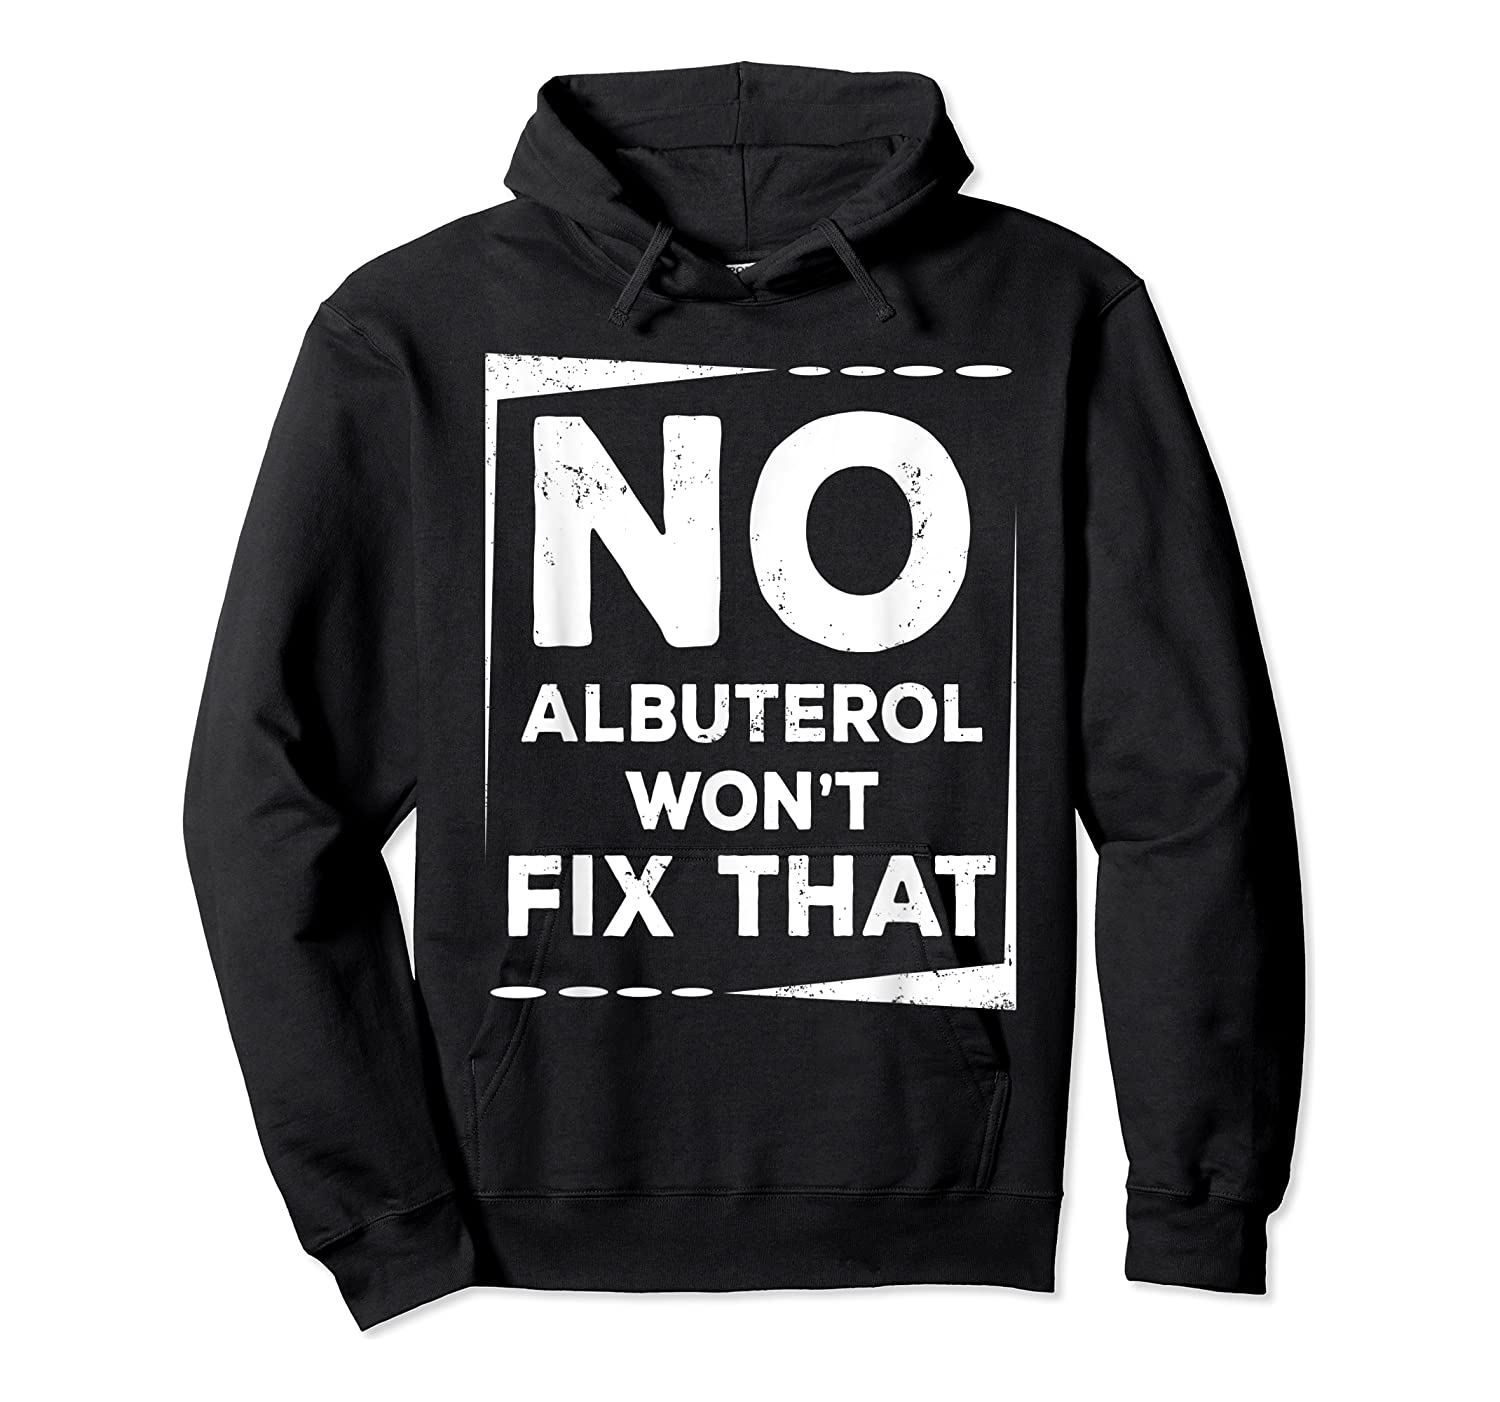 Respiratory Therapy - Albuterol Won't Fix That T-shirt Unisex Pullover Hoodie